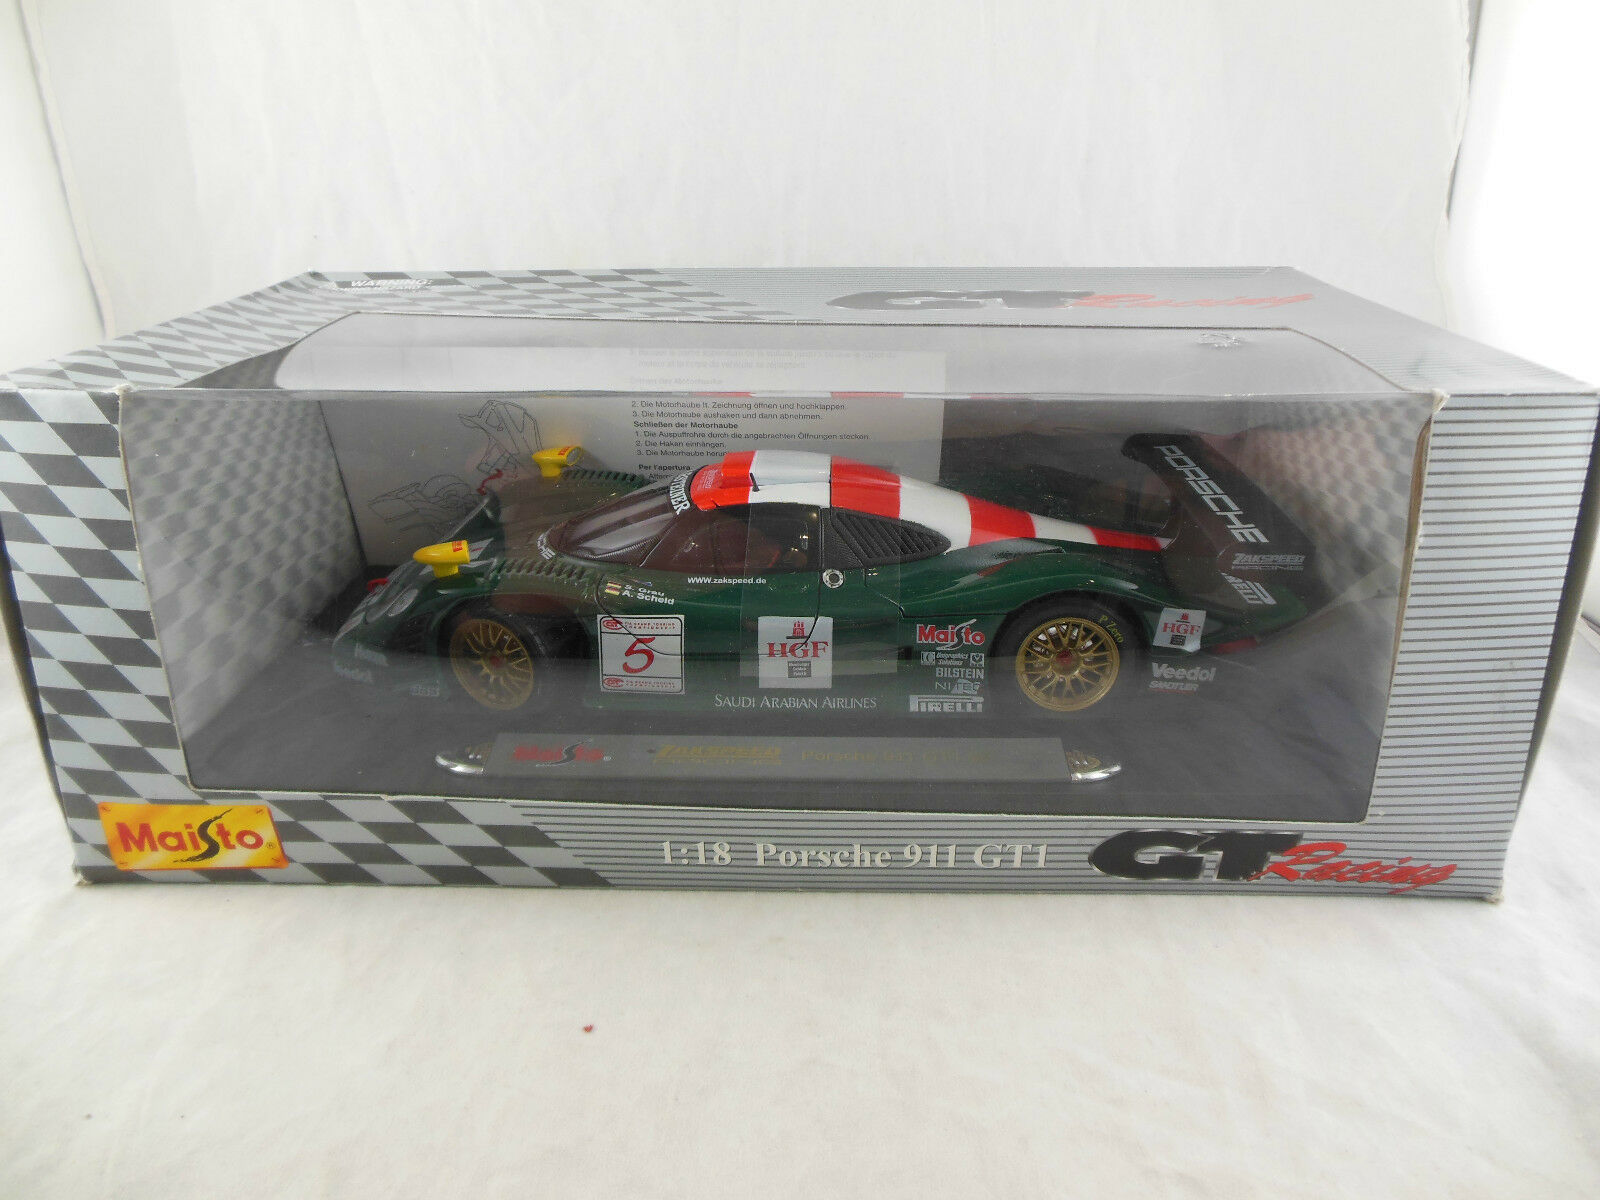 Maisto Porsche 911 GT1 98 Zakspeed Racing No.5 Scale 1 18 S grey & A Scheld